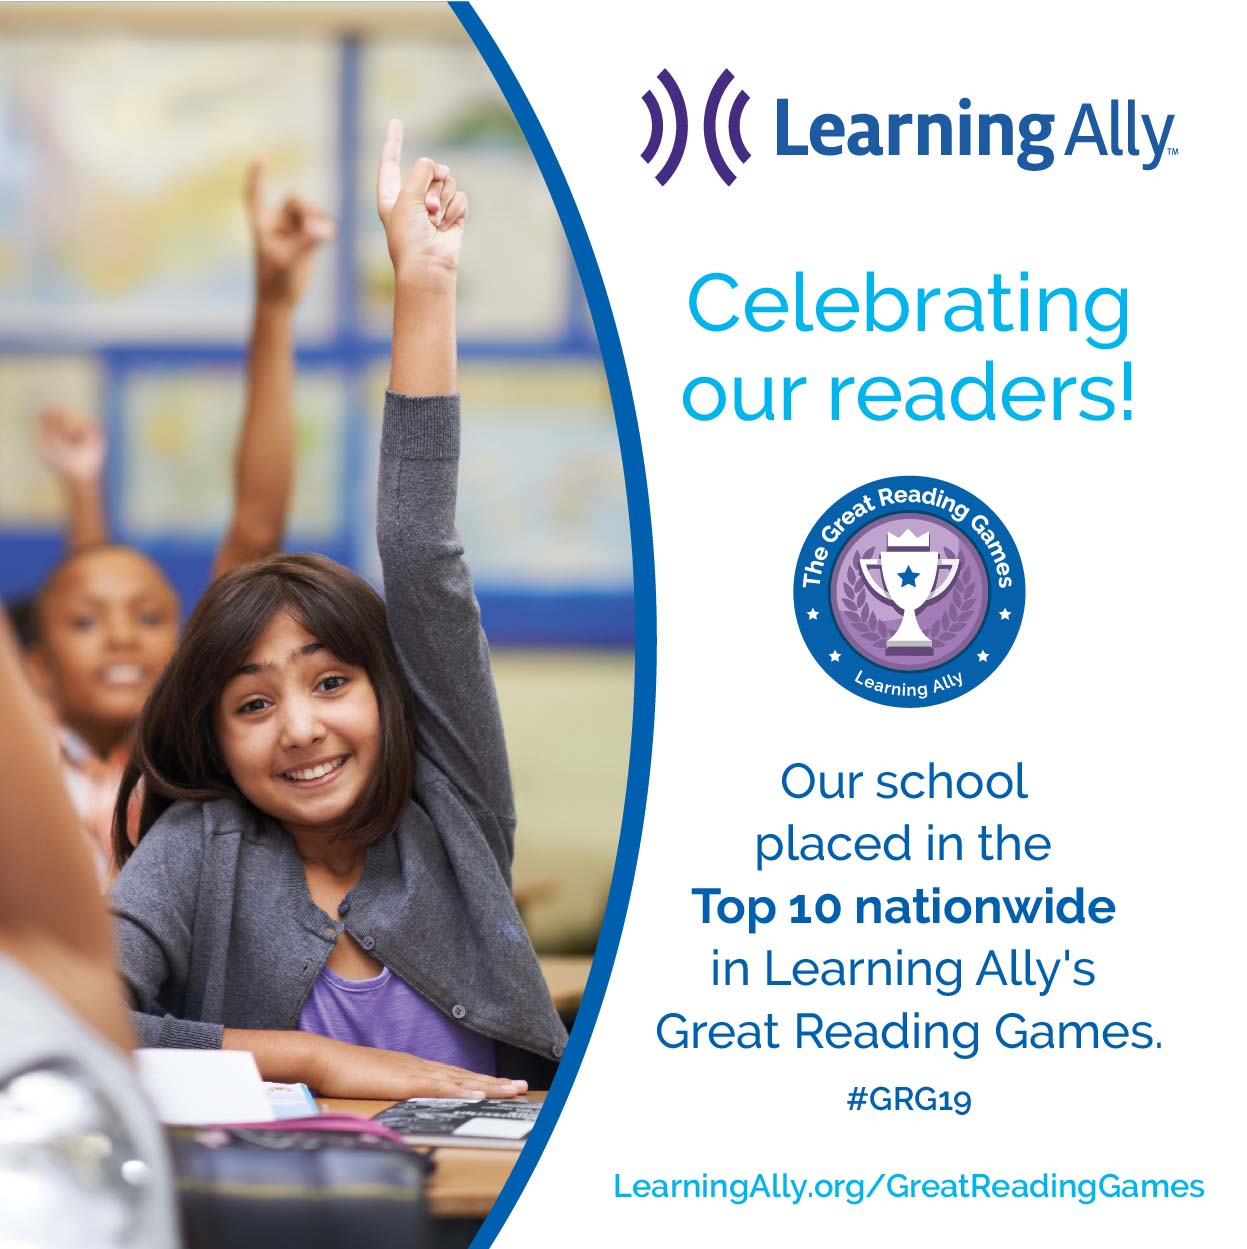 Learning Ally's Great Reading Games Image with text Celebrate Our Readers and the image of a trophy.